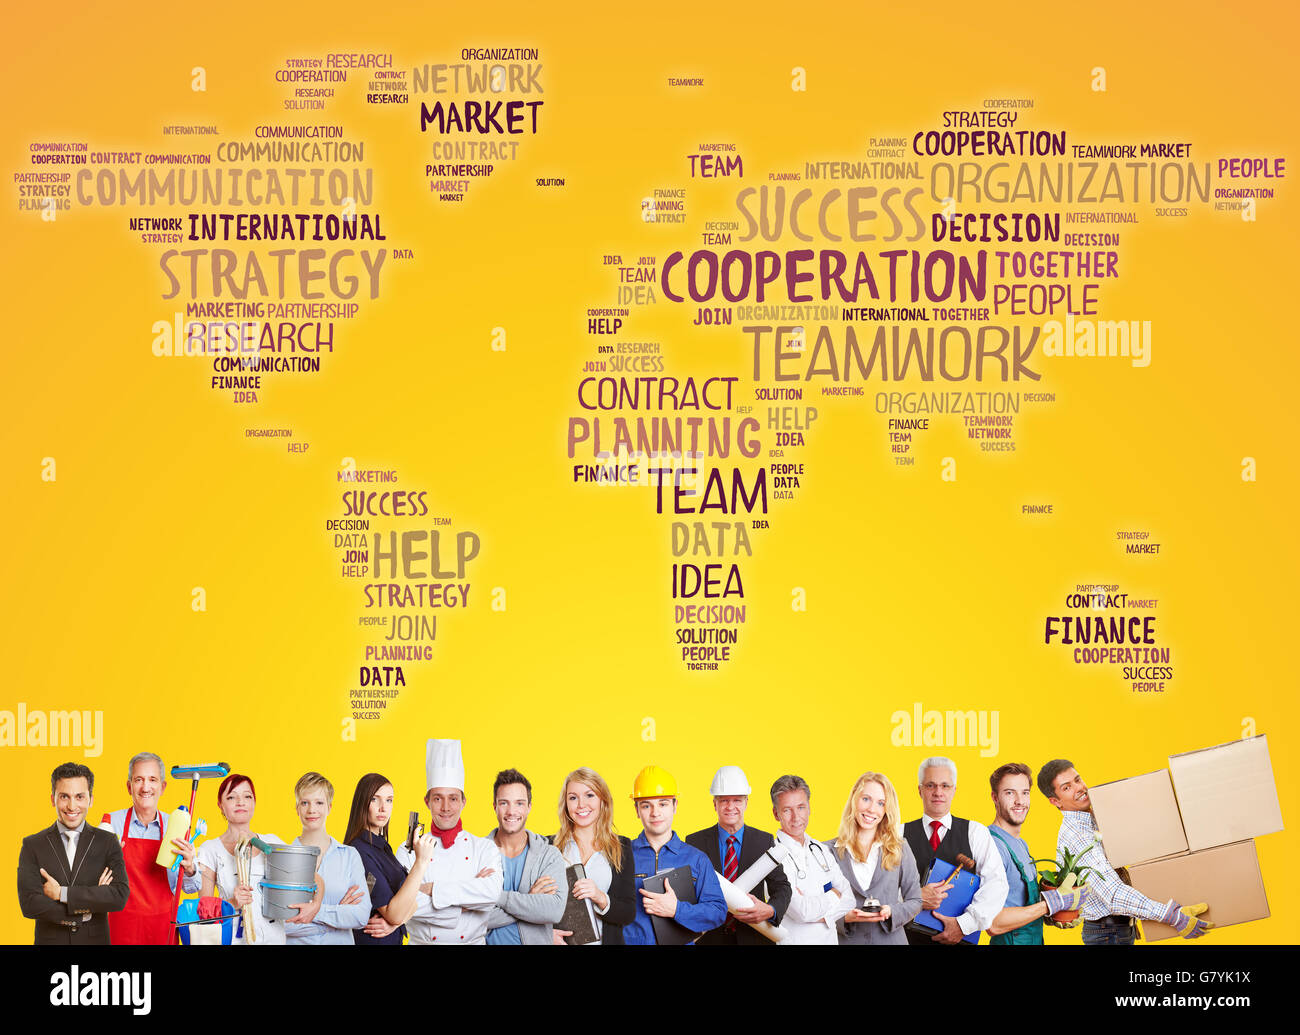 International cooperation and success team with different careers and professions - Stock Image